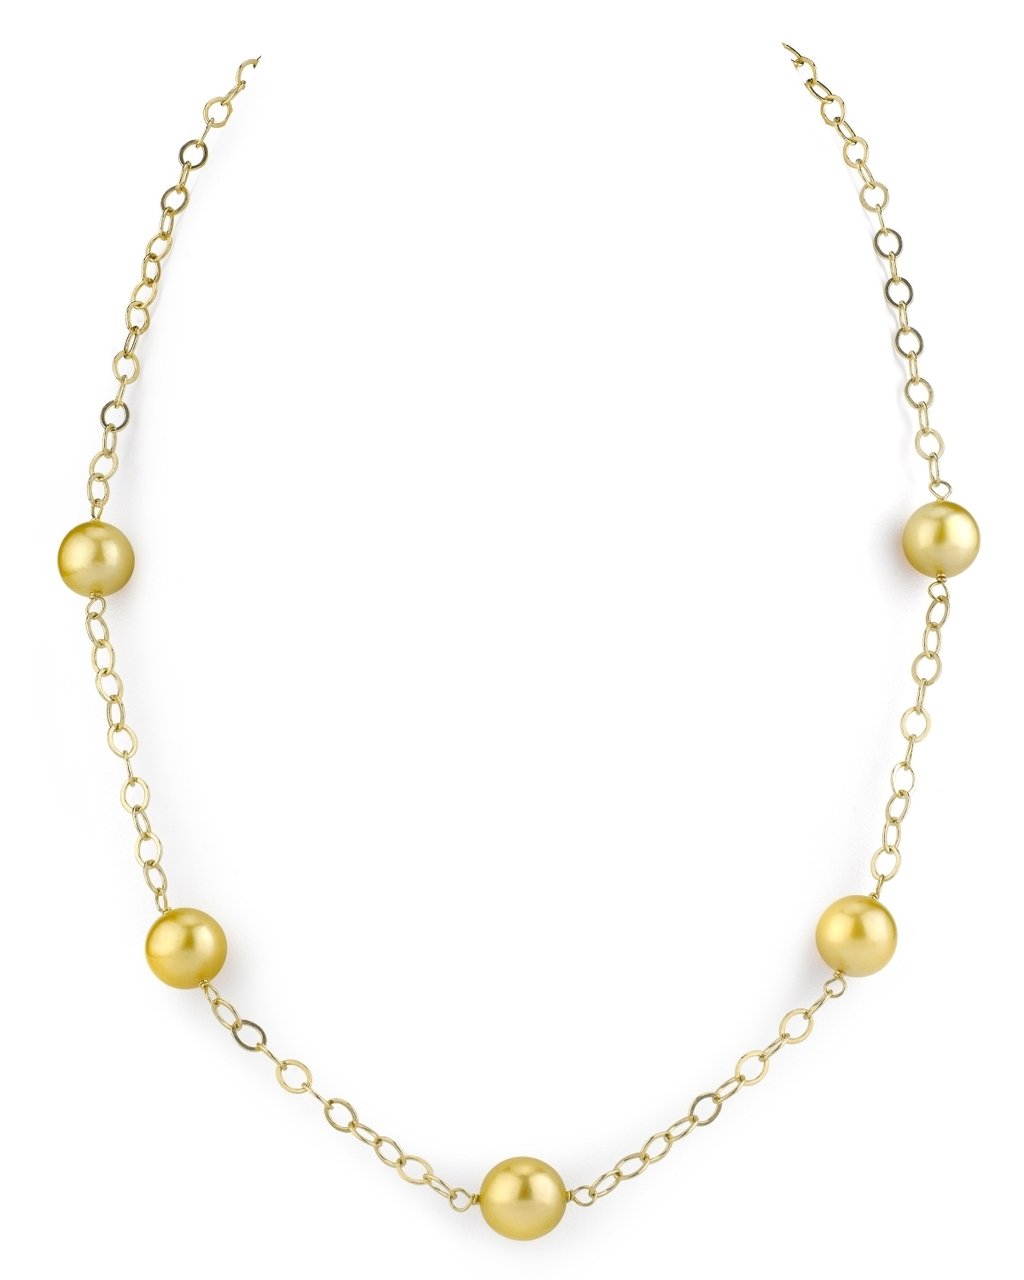 This exquisite necklace features 9.0-10.0mm Golden South Sea pearls, handpicked for their radiant luster